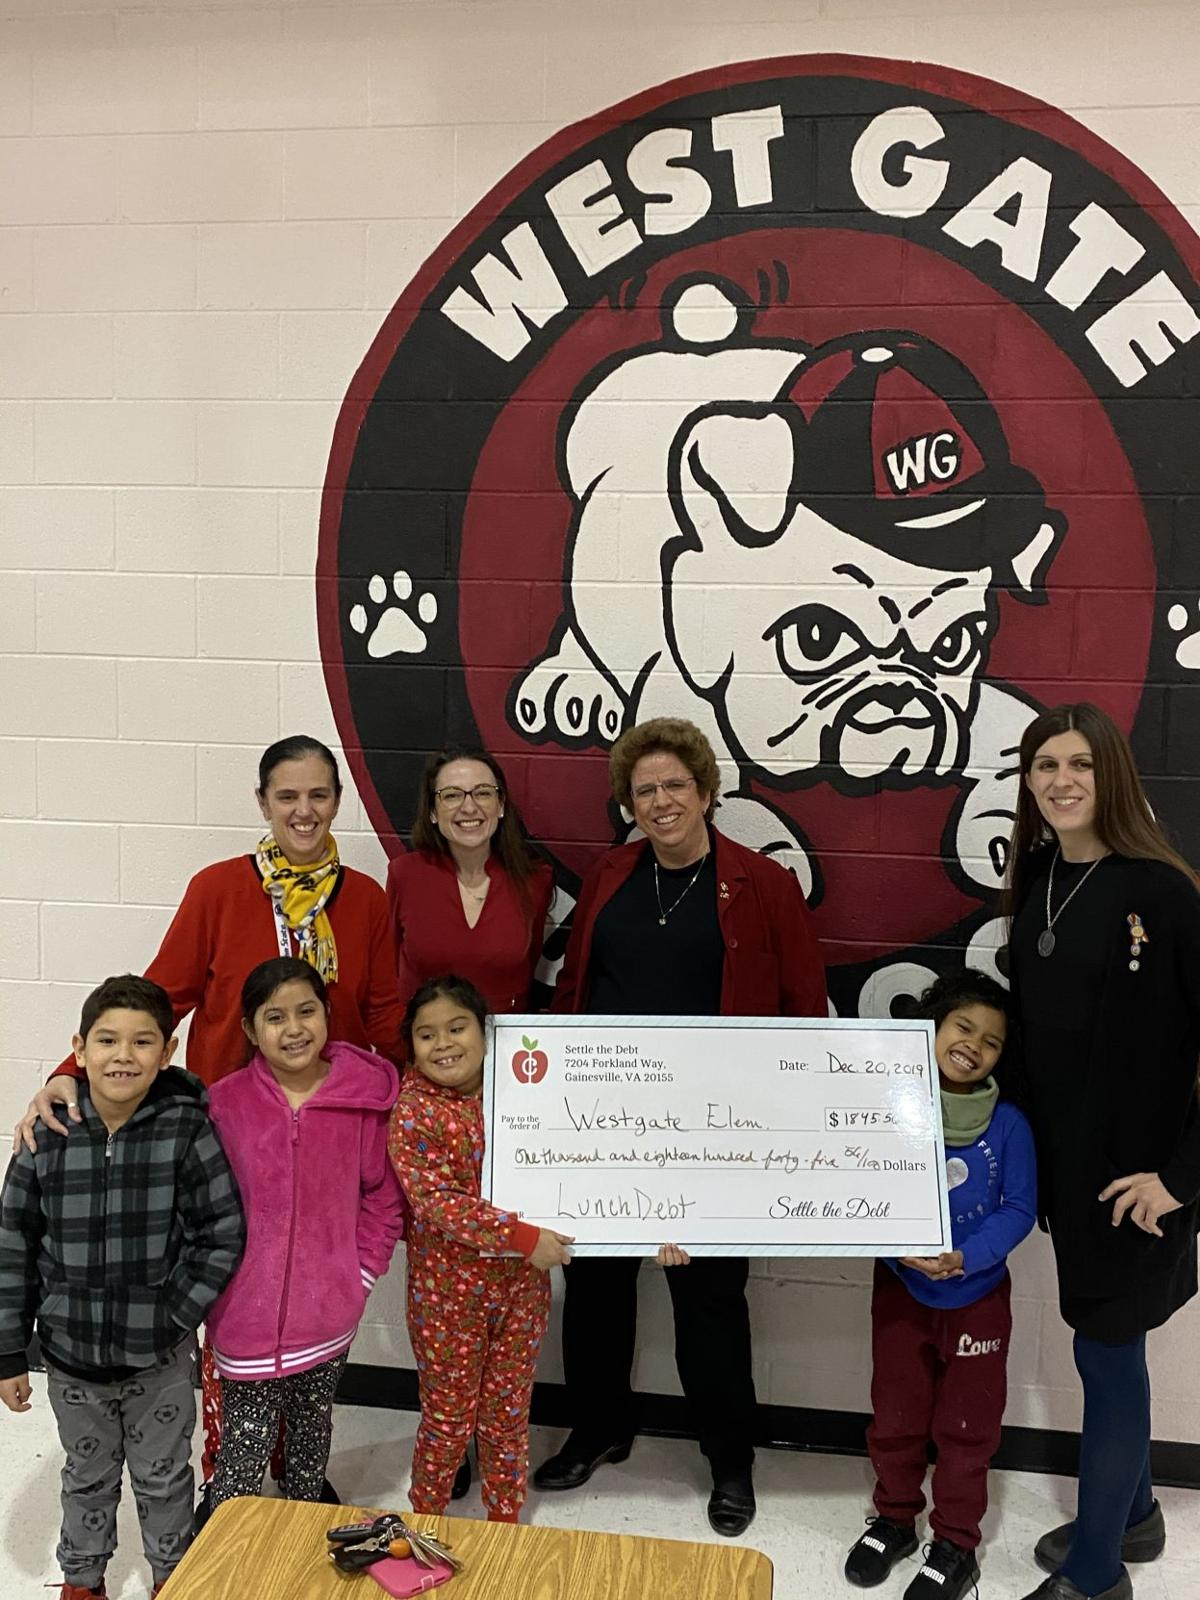 Settle the Debt at West Gate Elementary School